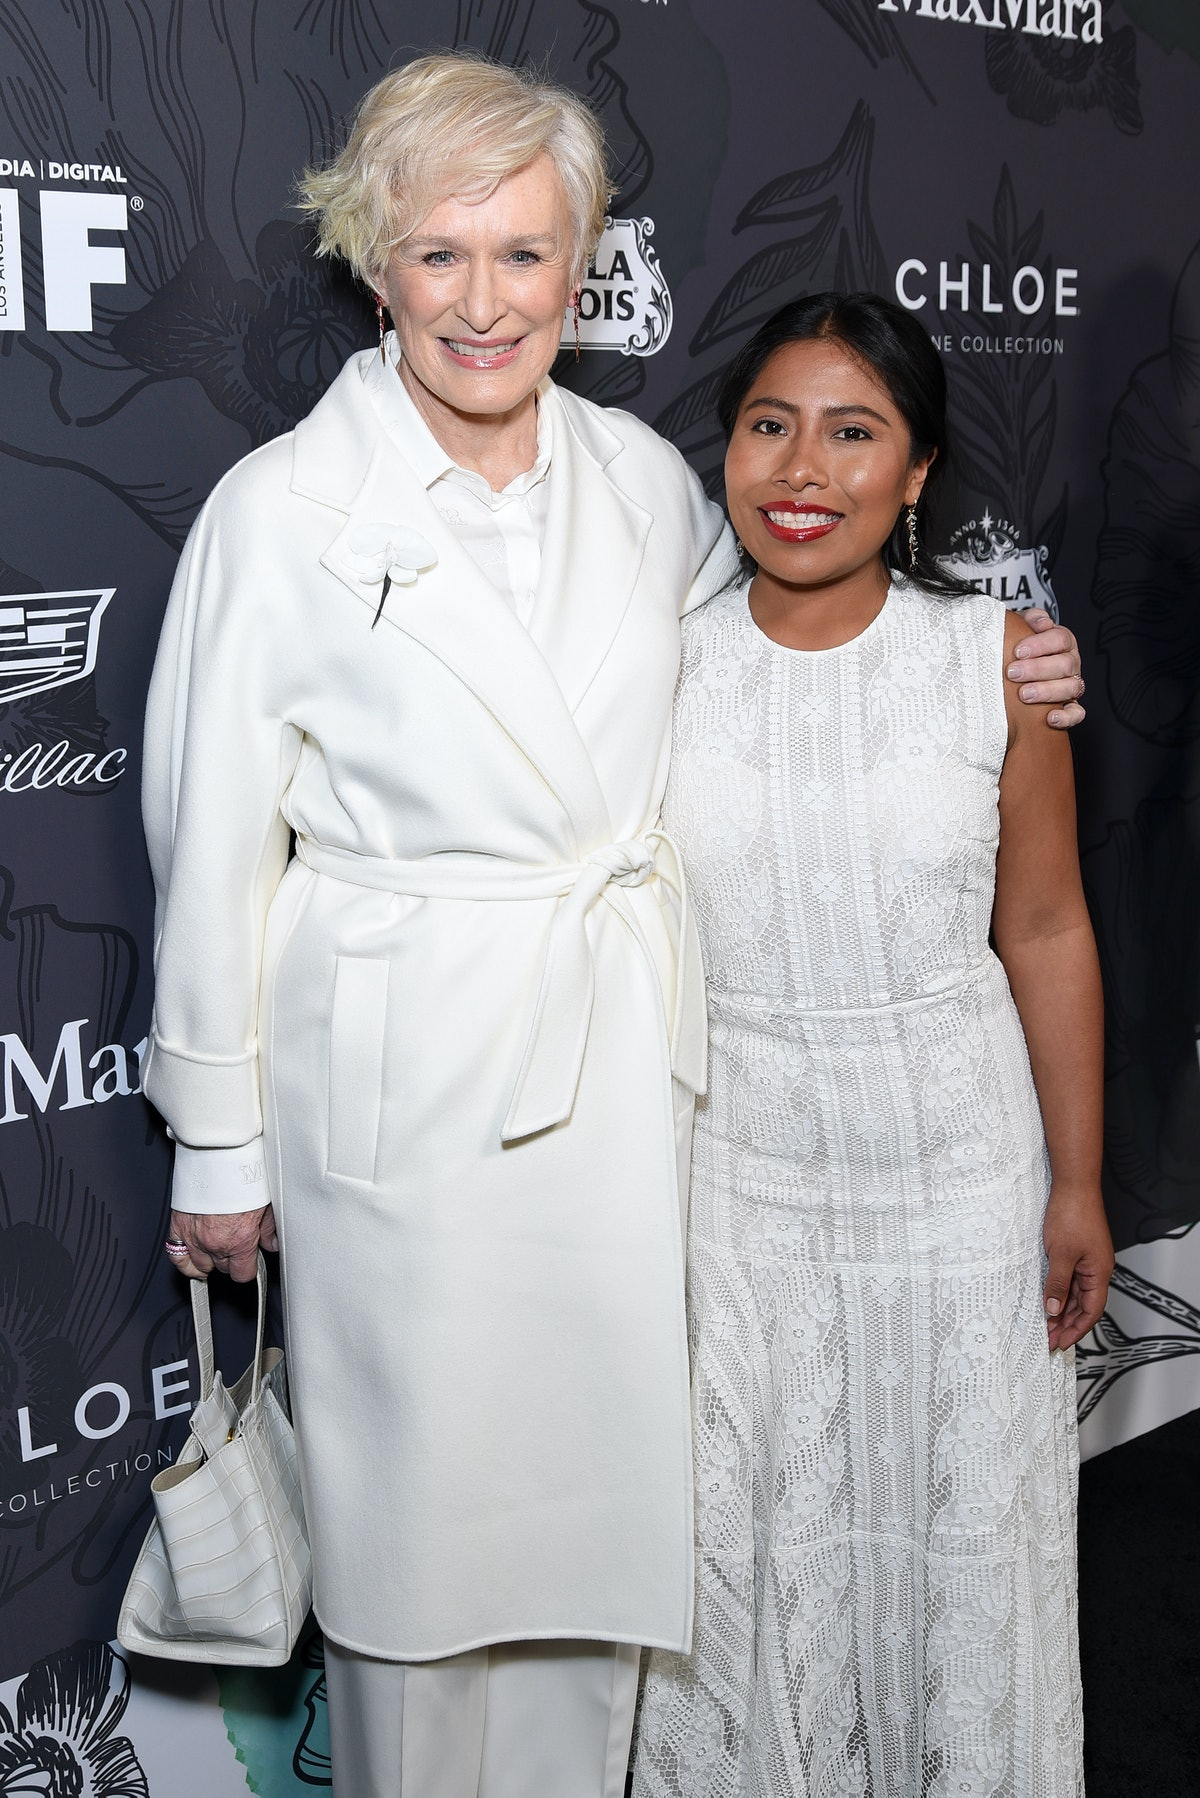 12th Annual Women In Film Oscar Nominees Party Presented By Max Mara With Additional Support From Chloe Wine Collection, Stella Artois and Cadillac - Red Carpet